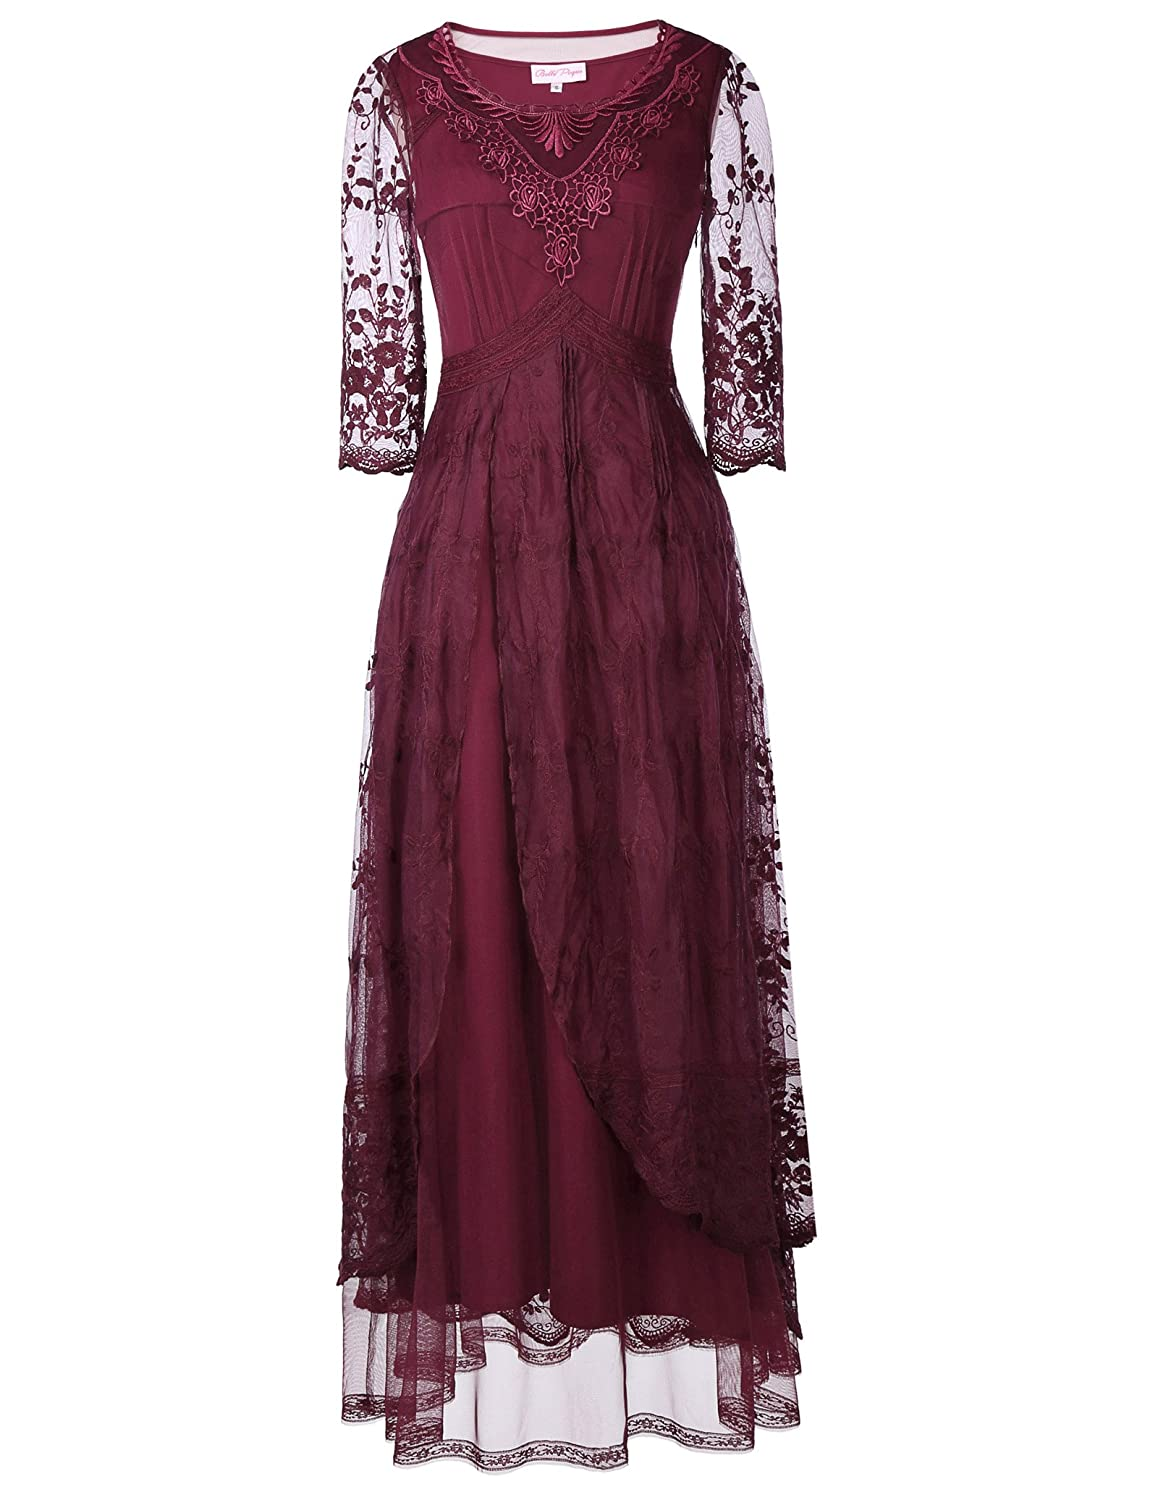 1900-1910s Clothing Belle Poque Steampunk Victorian Titanic Lace Maxi Dress Tea Party Gown Antique Dress $43.99 AT vintagedancer.com